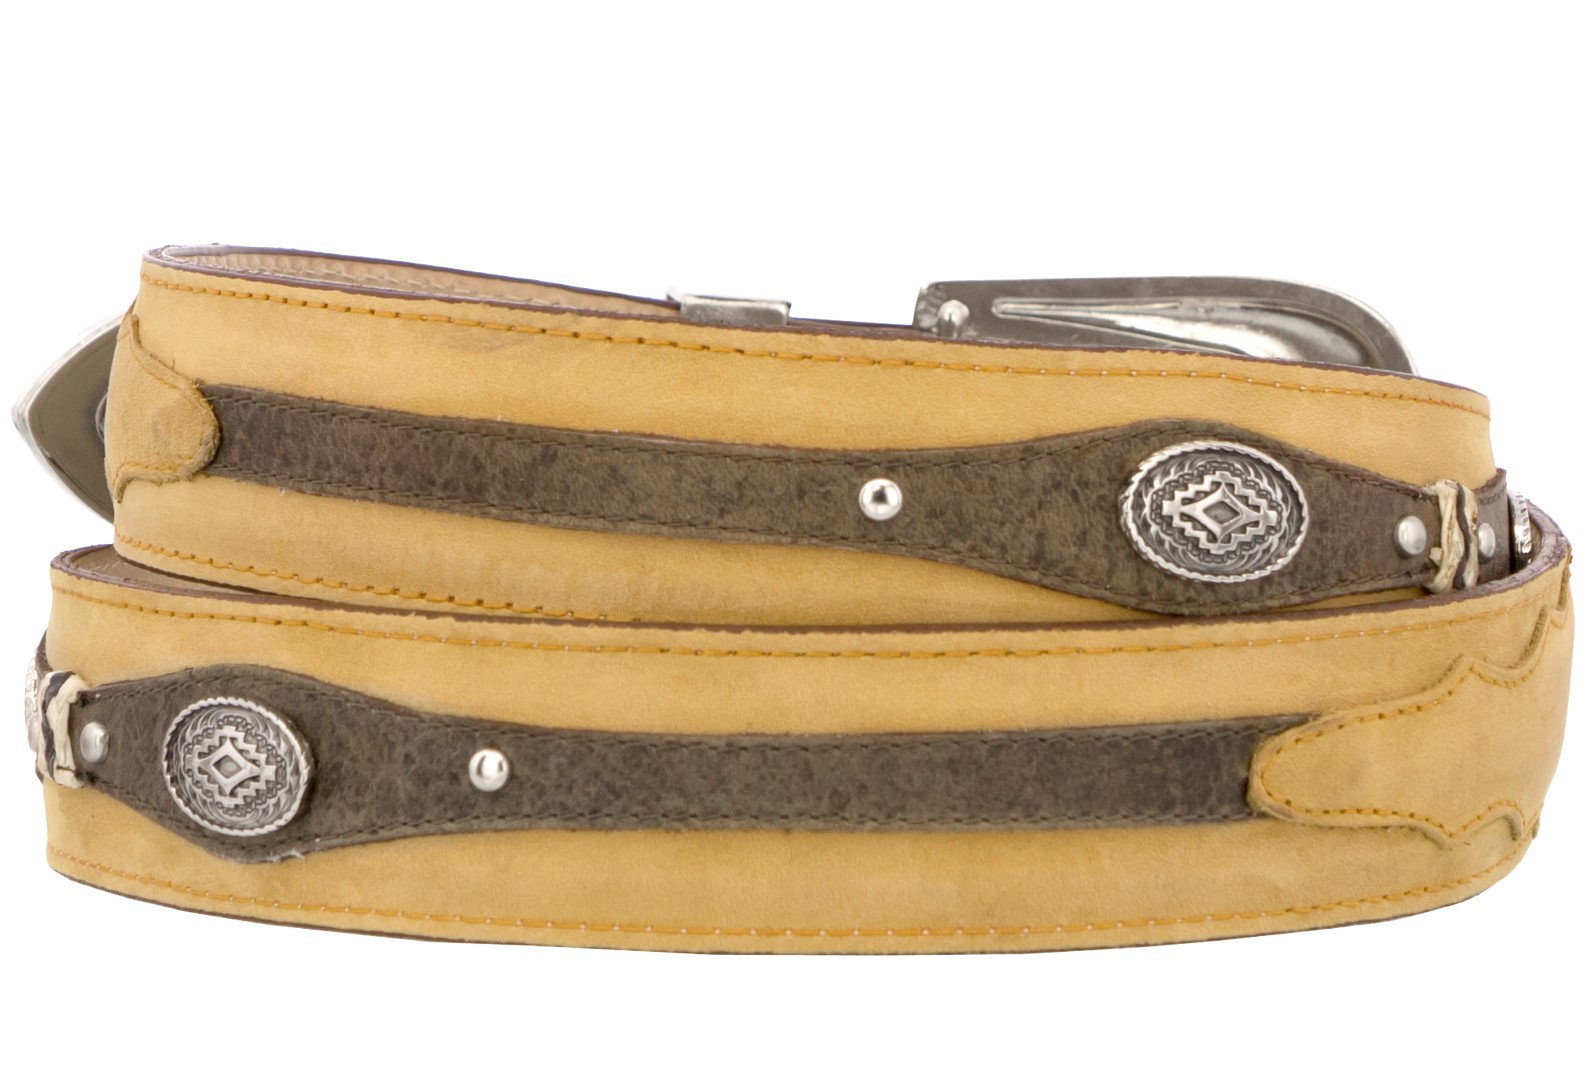 Mens-Concho-Western-Belt-Genuine-Leather-Cowboy-Silver-Studs-Buckle-Sand thumbnail 2